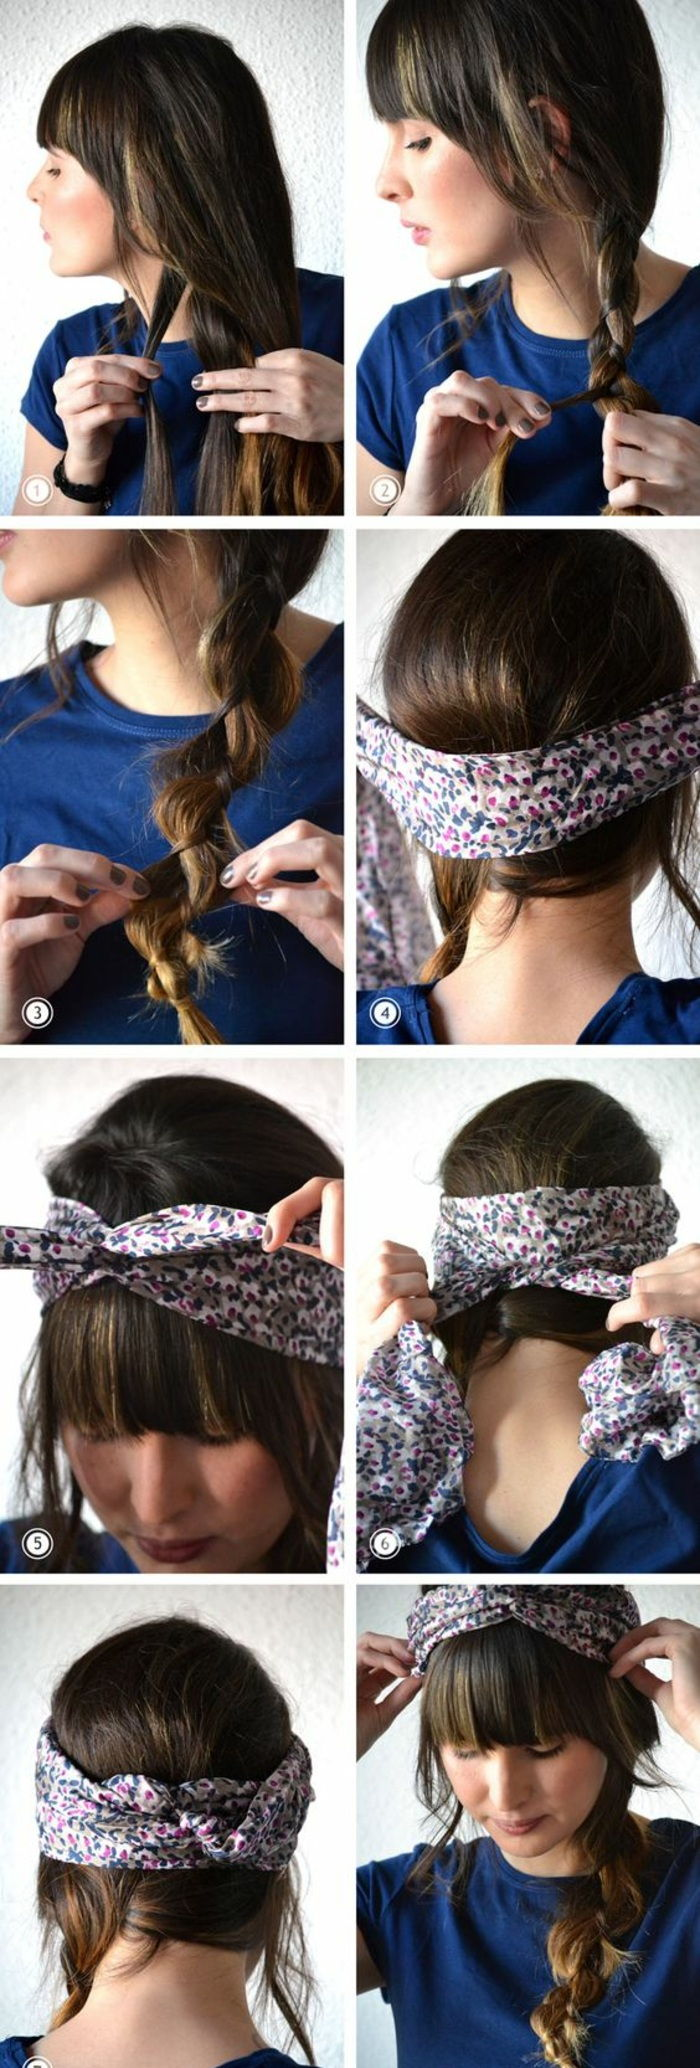 hairstyles with hairband to make yourself, blue t-shirt, hairstyle with braid